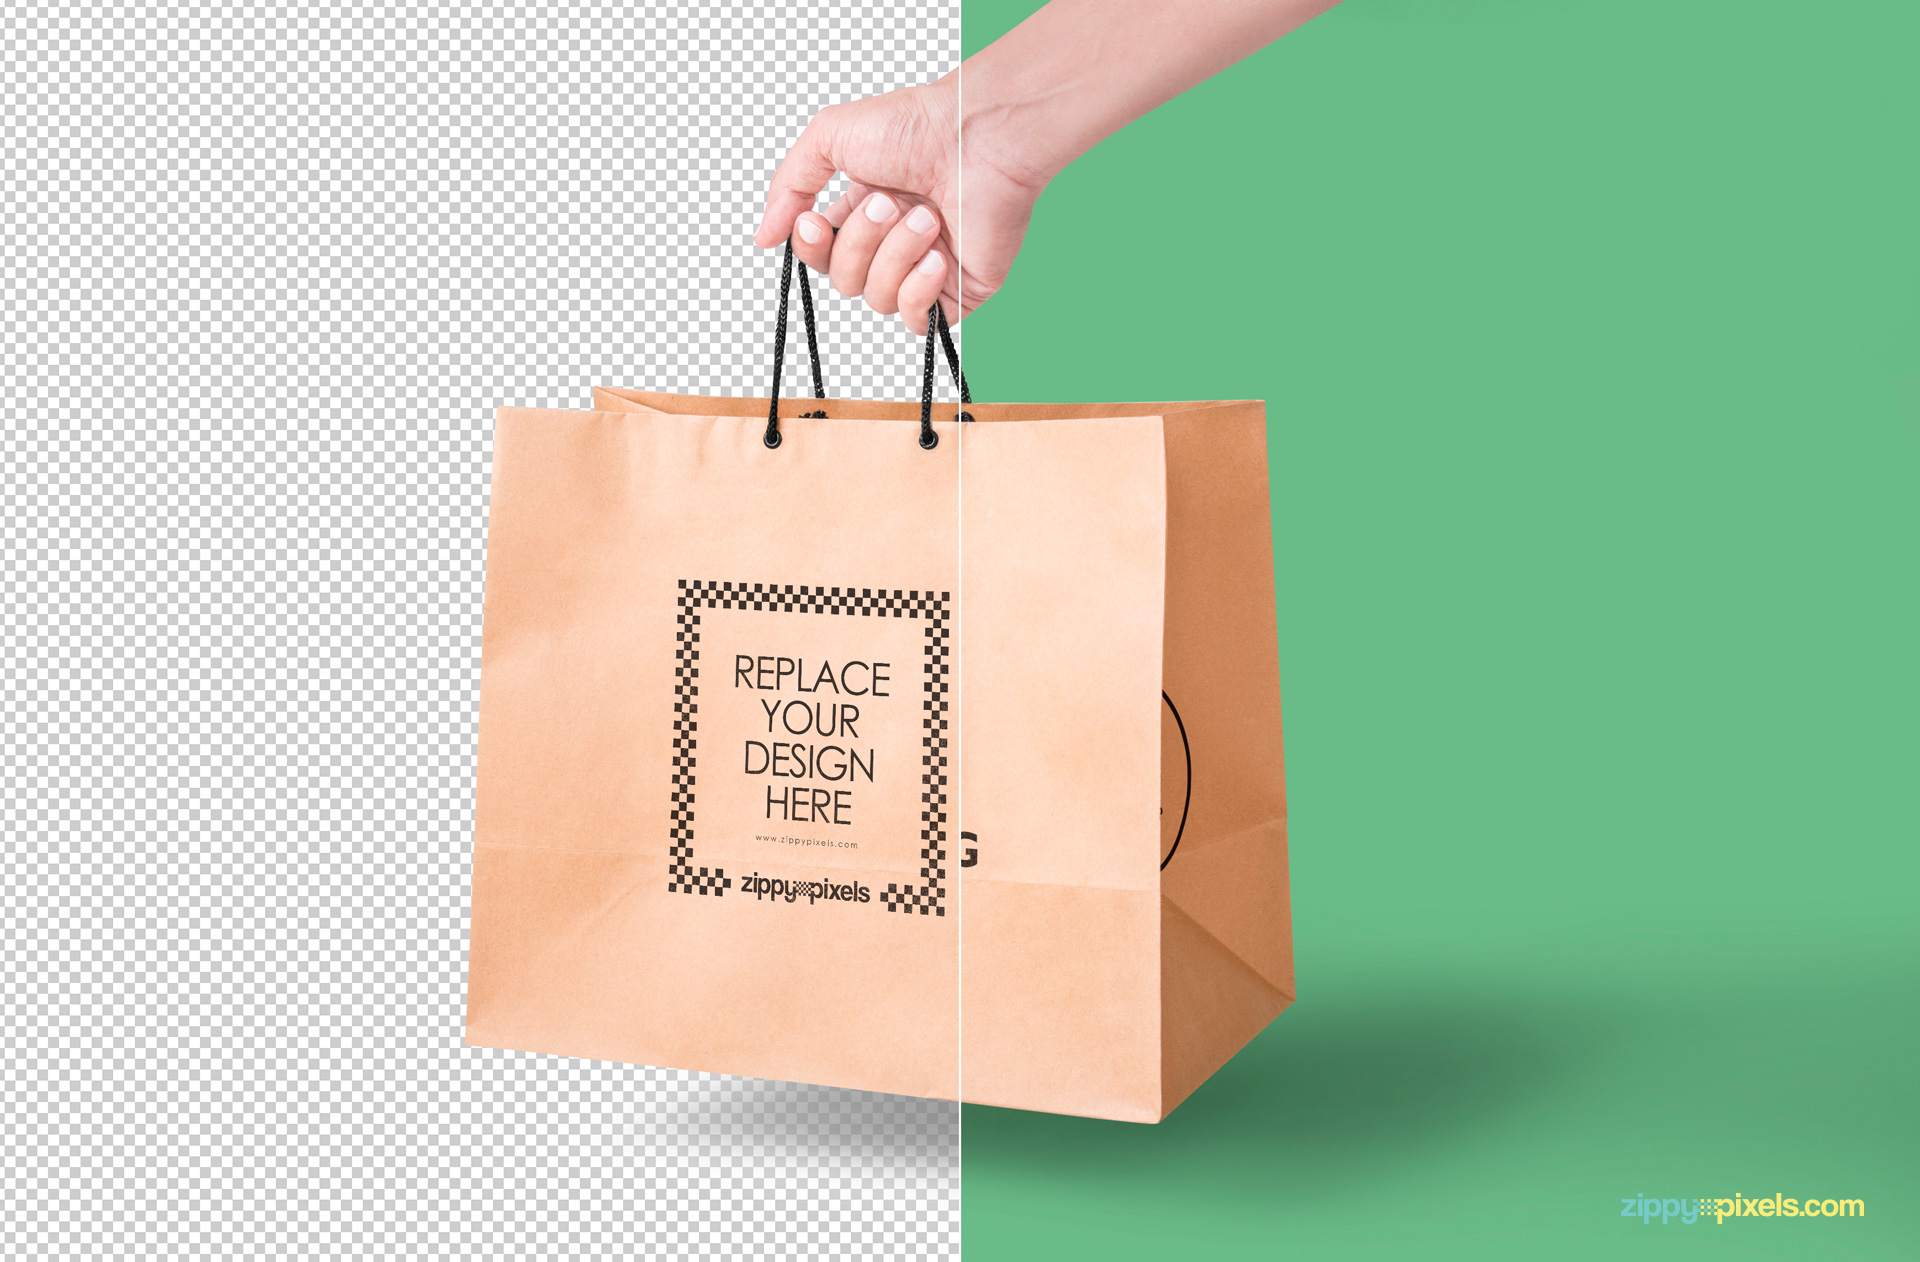 paper bag mockup free psd download zippypixels